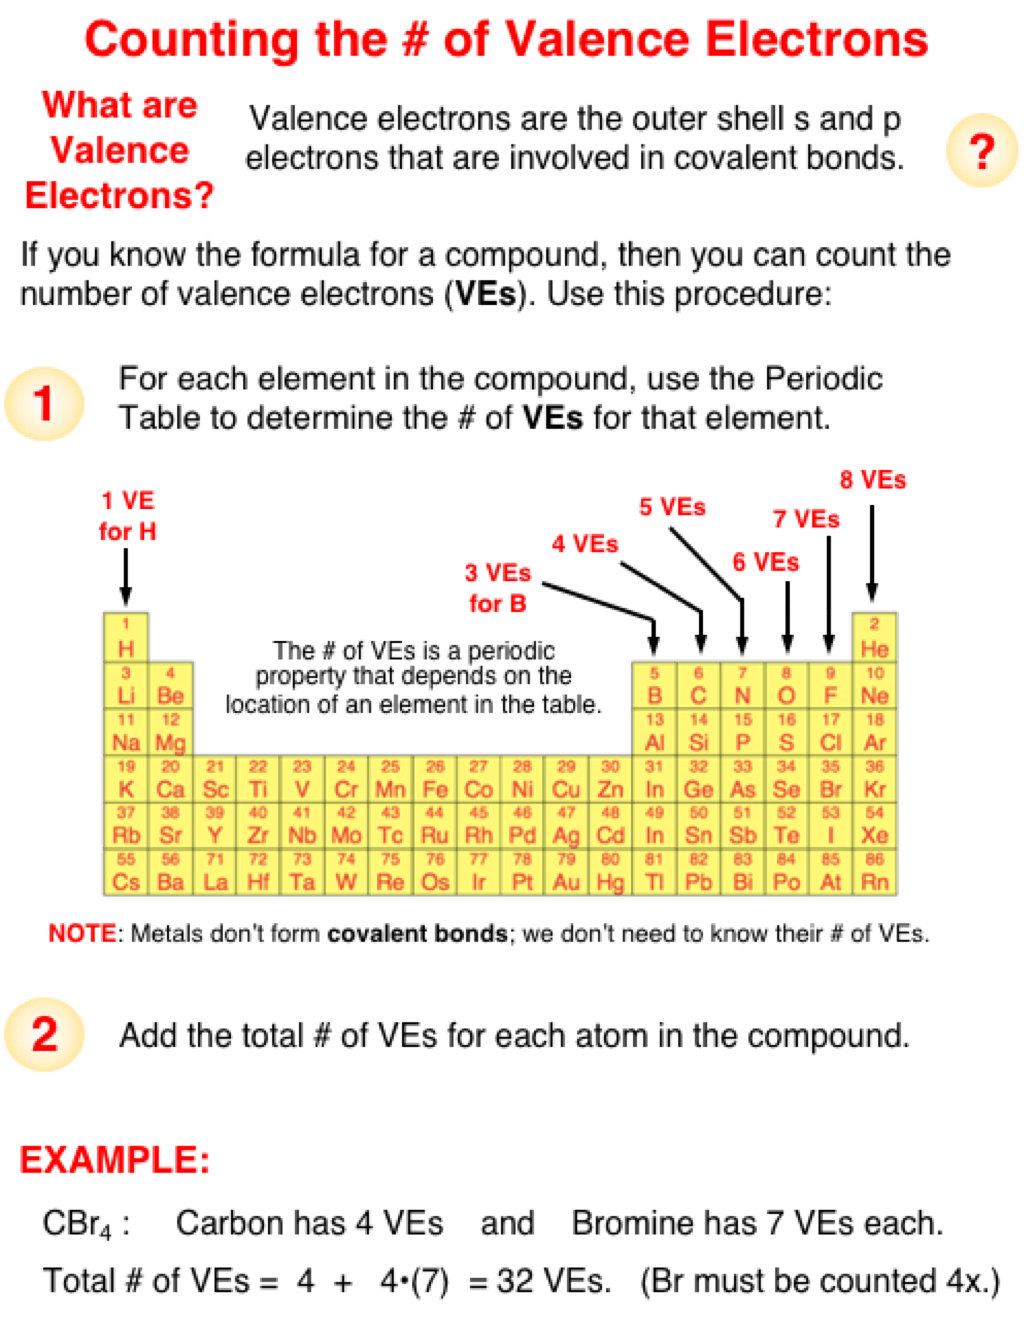 C Valence Electrons : valence, electrons, Lewis, Electron, Structures, Counting, Valence, Electrons